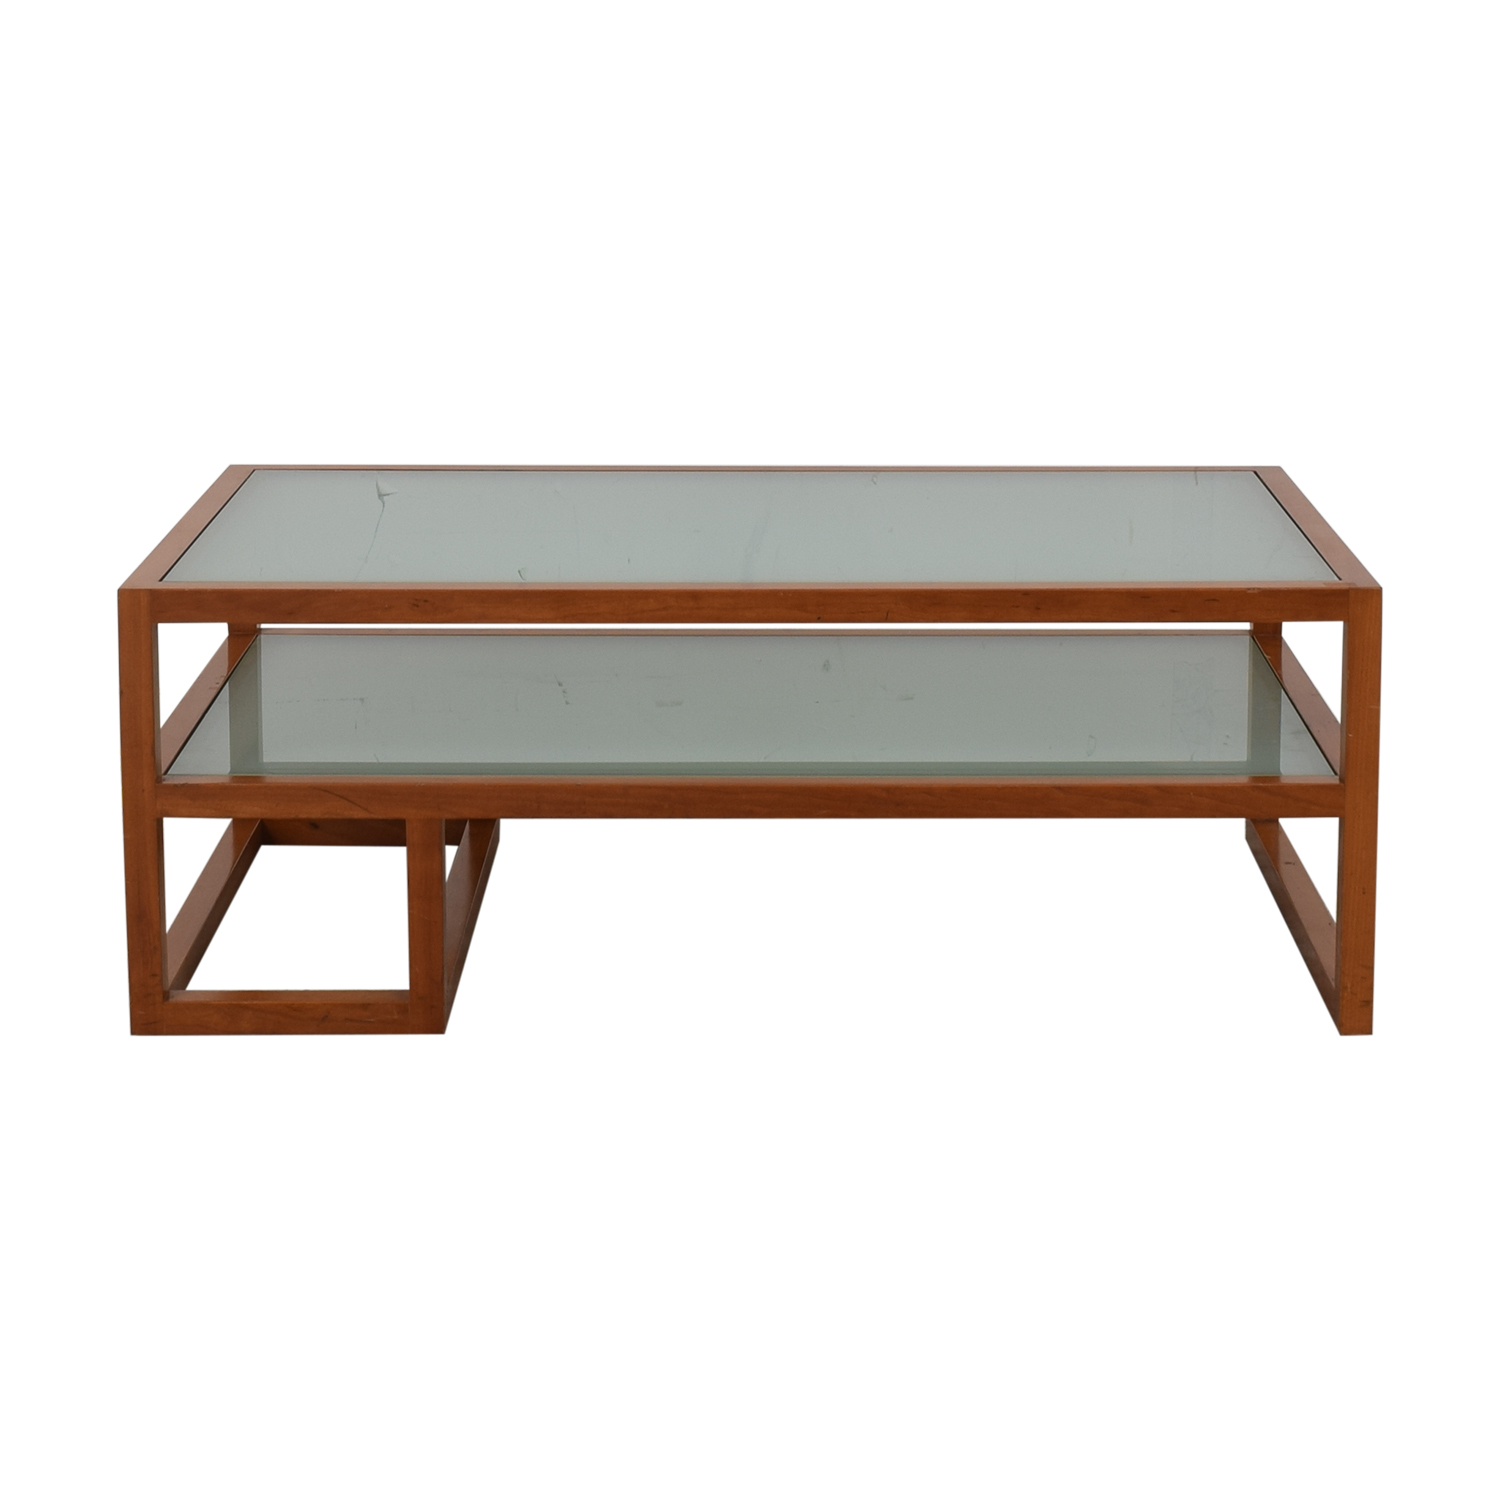 Custom Two Tier Coffee Table / Tables